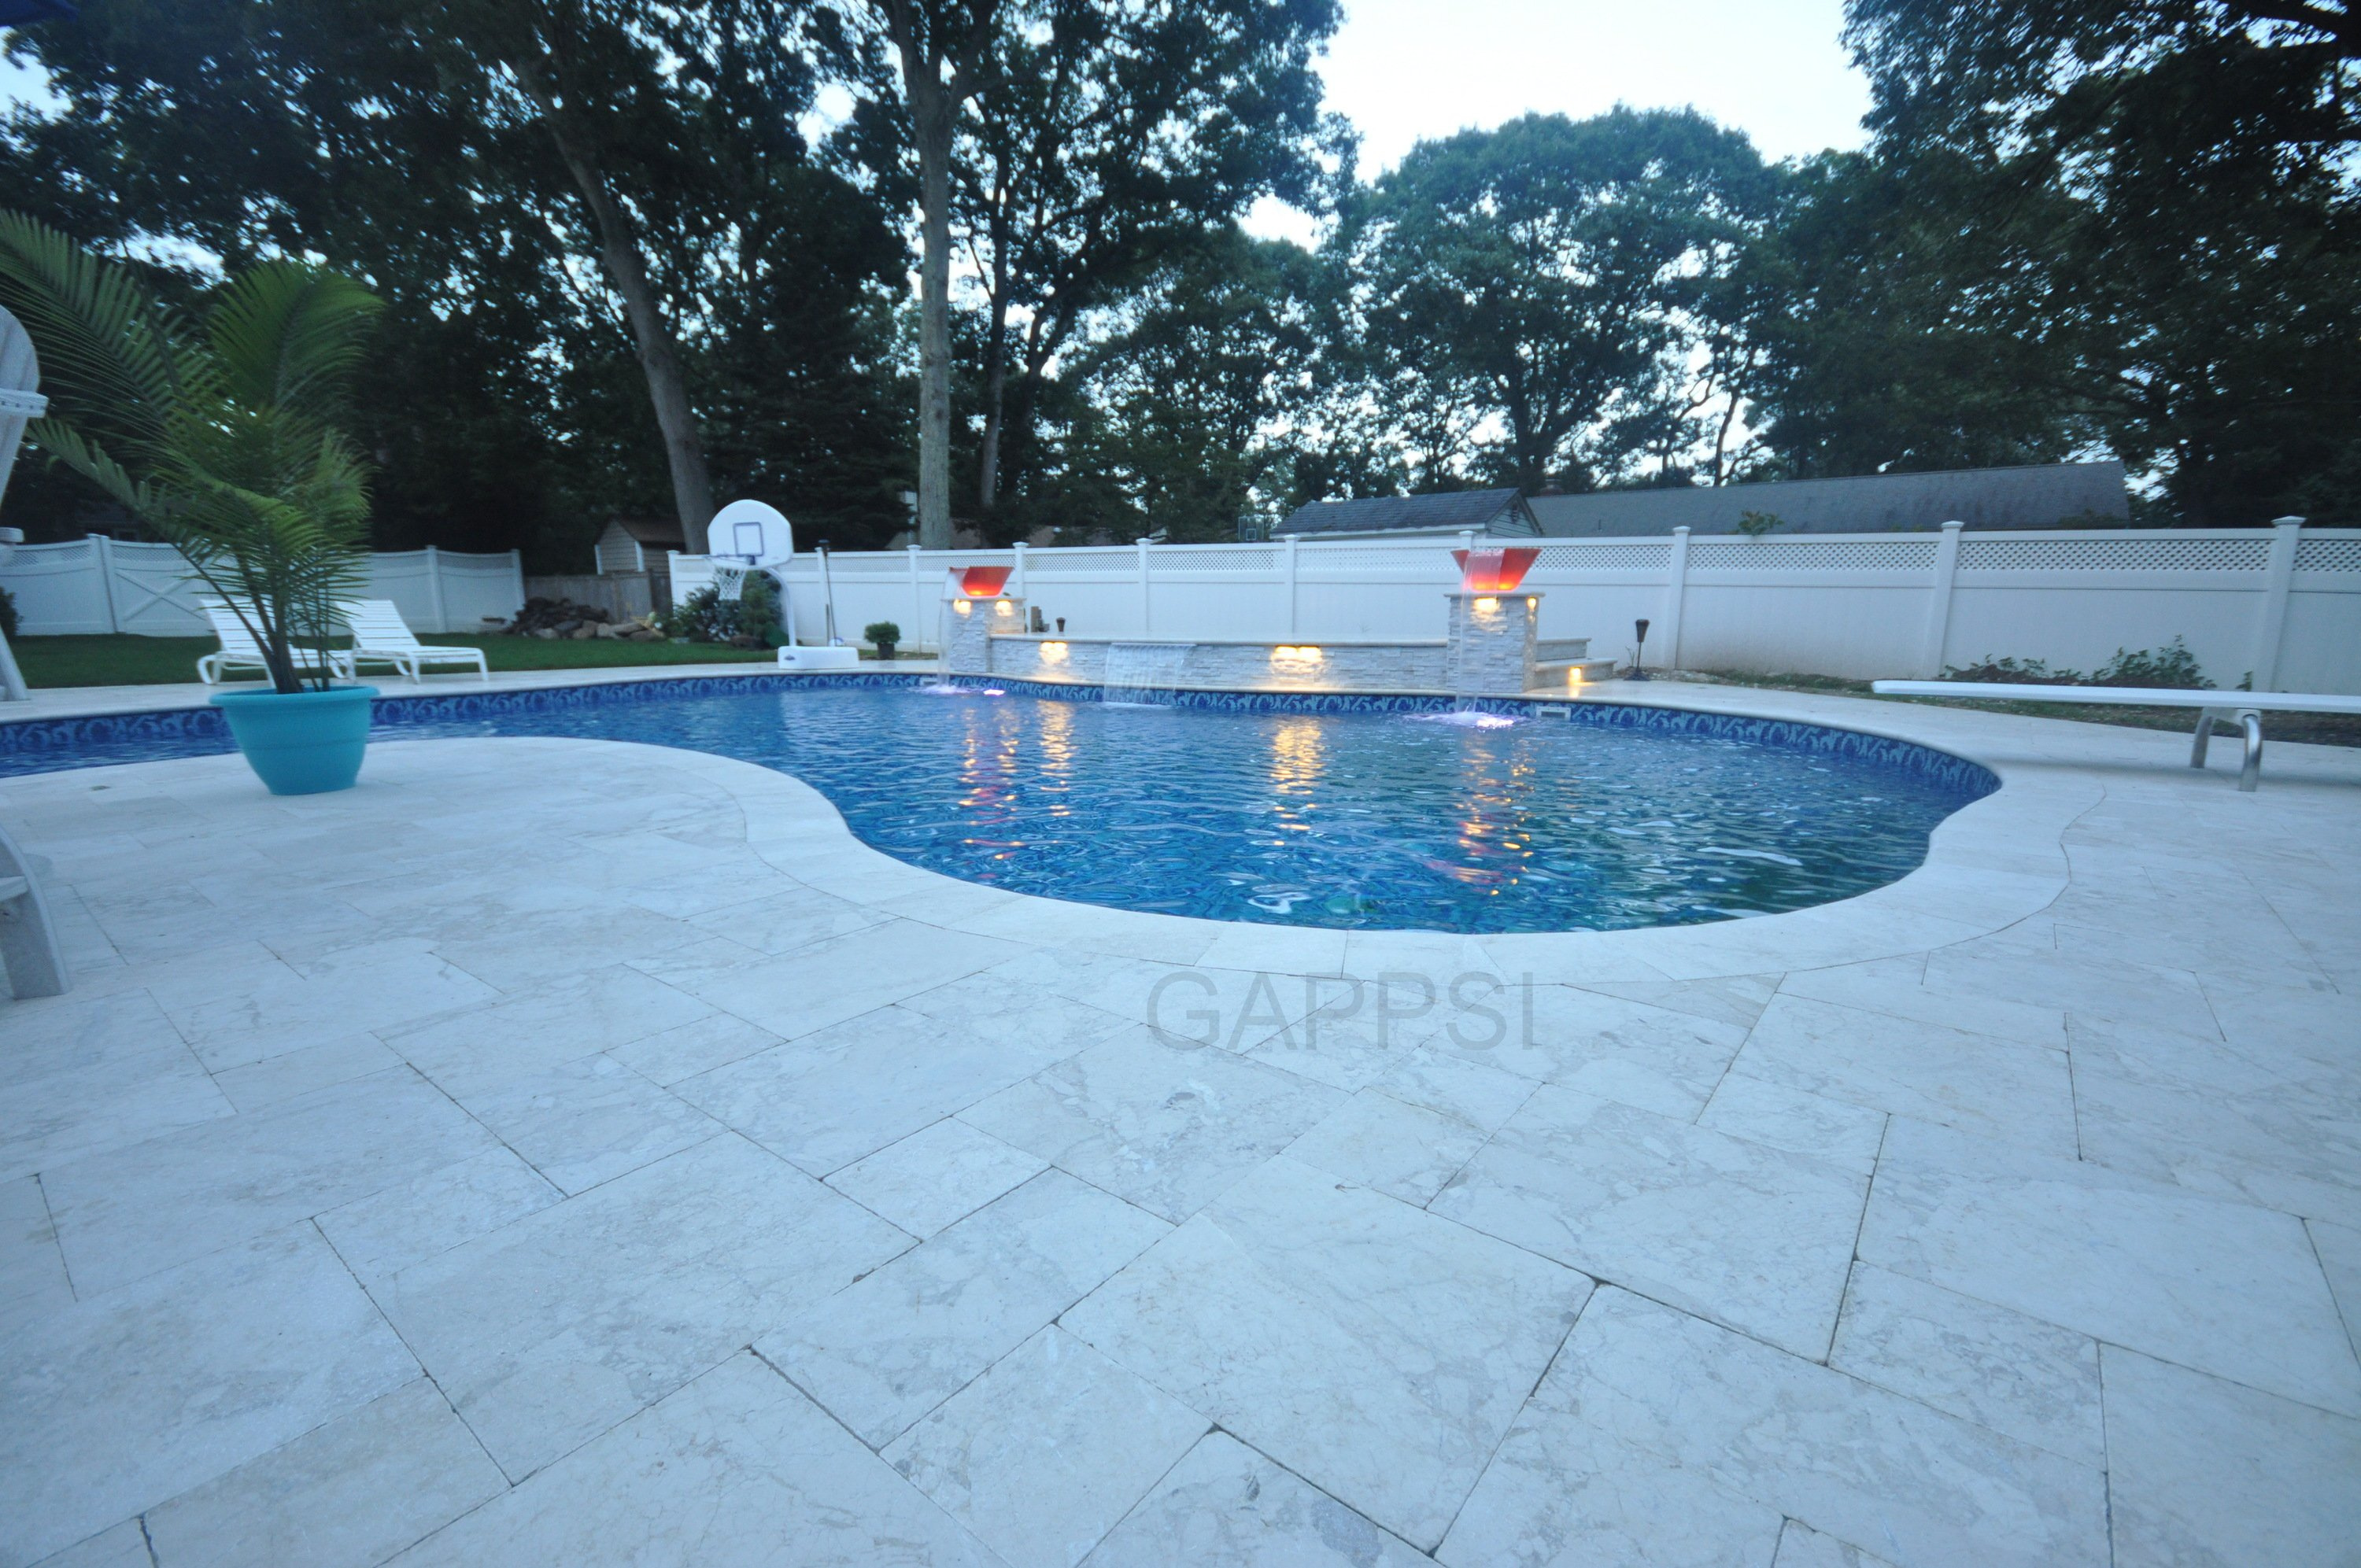 https://gappsi.com/wp-content/uploads/2018/07/winter-creame-marble-pavers-bayrock-supplier-Gappsi.jpg